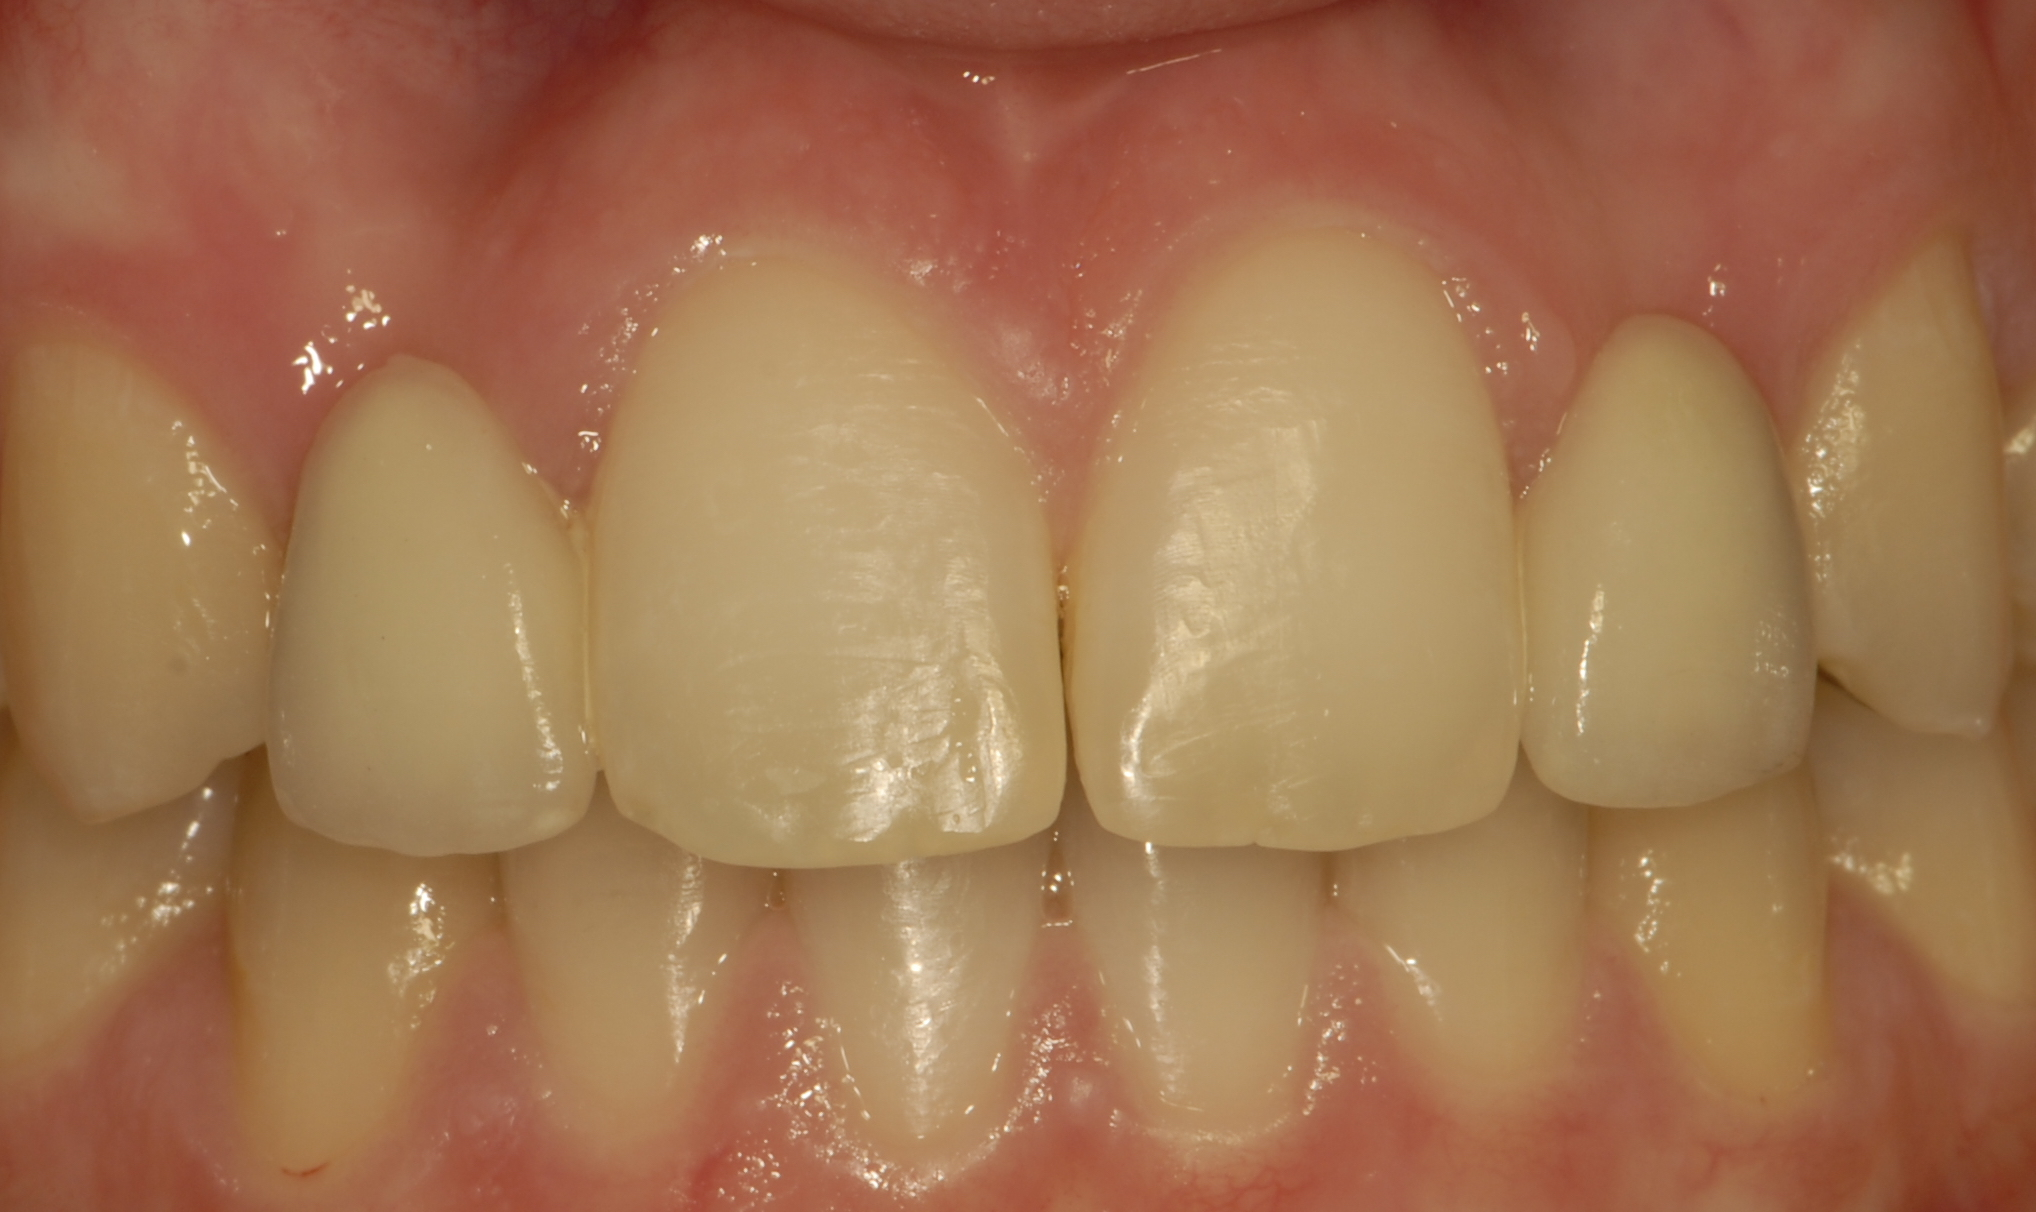 Bridges - A bridge is a device used to replace missing teeth by attaching an artificial tooth (pontic) to an adjacent natural tooth, or to an implant.A bridge can be either permanently attached (fixed), or removable. The doctor will discuss options with you and recommend the best treatment.